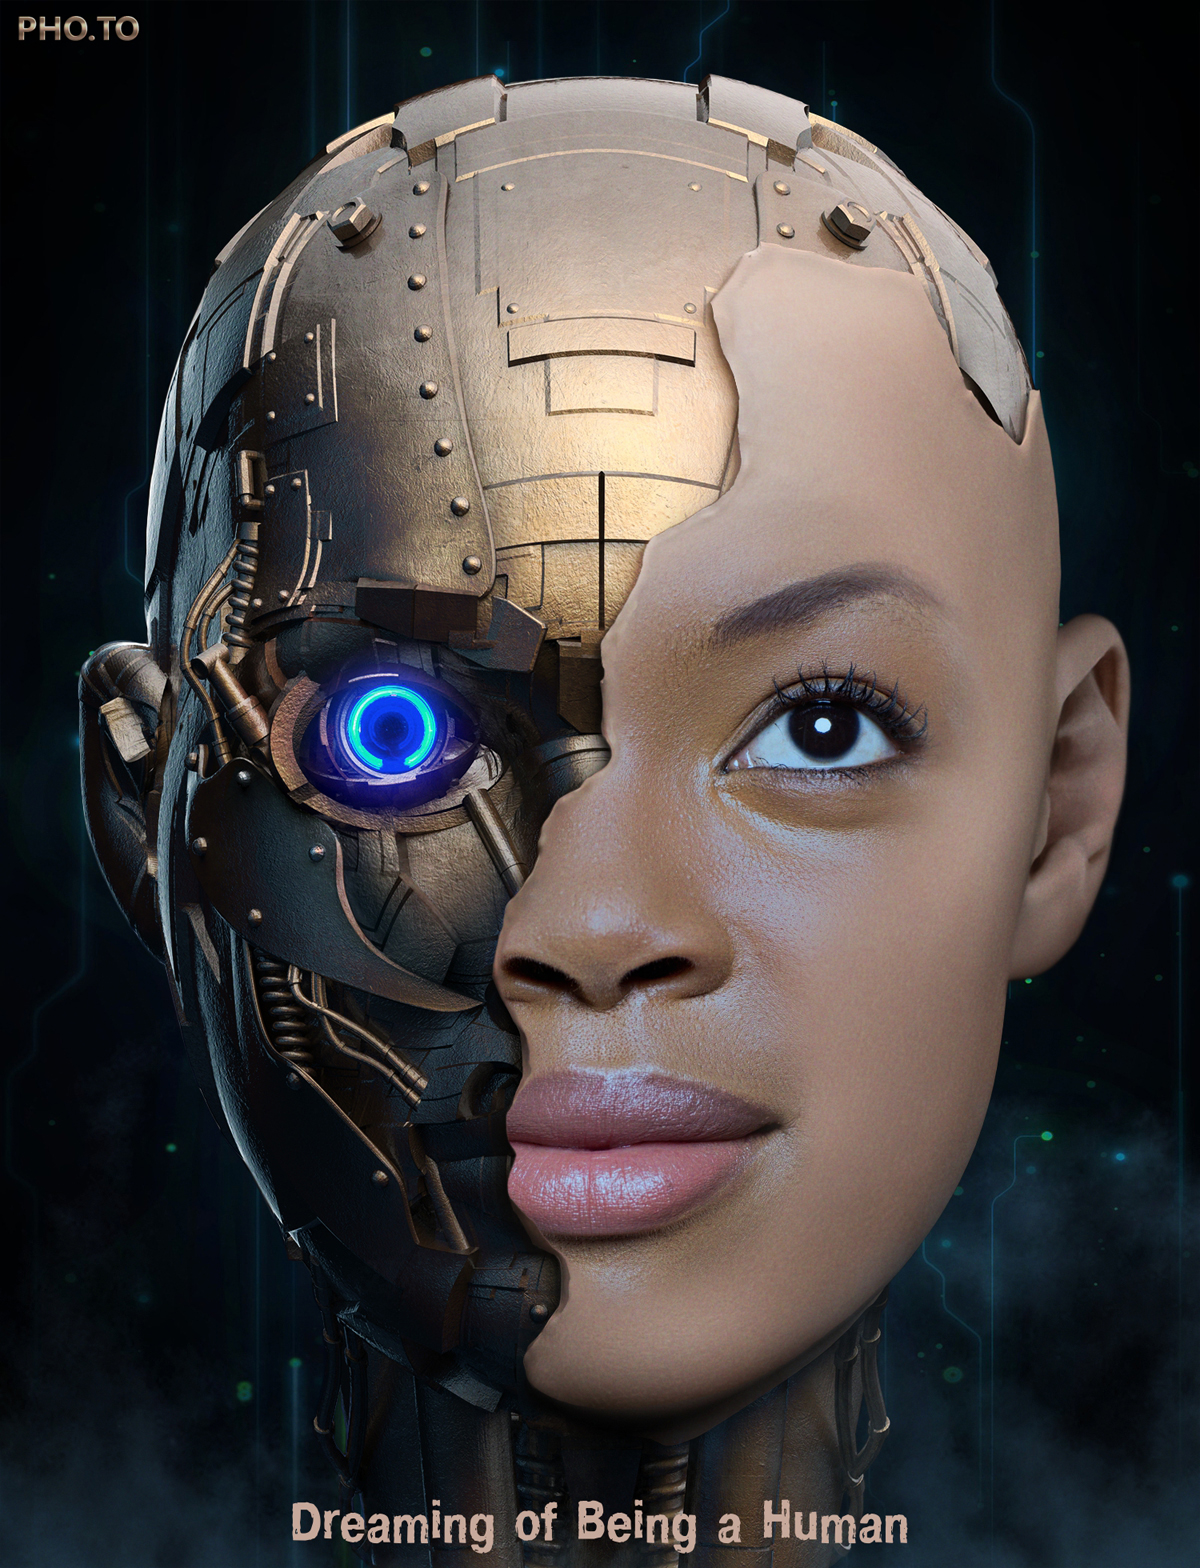 Robotic face imitated online on a photo of a young woman.